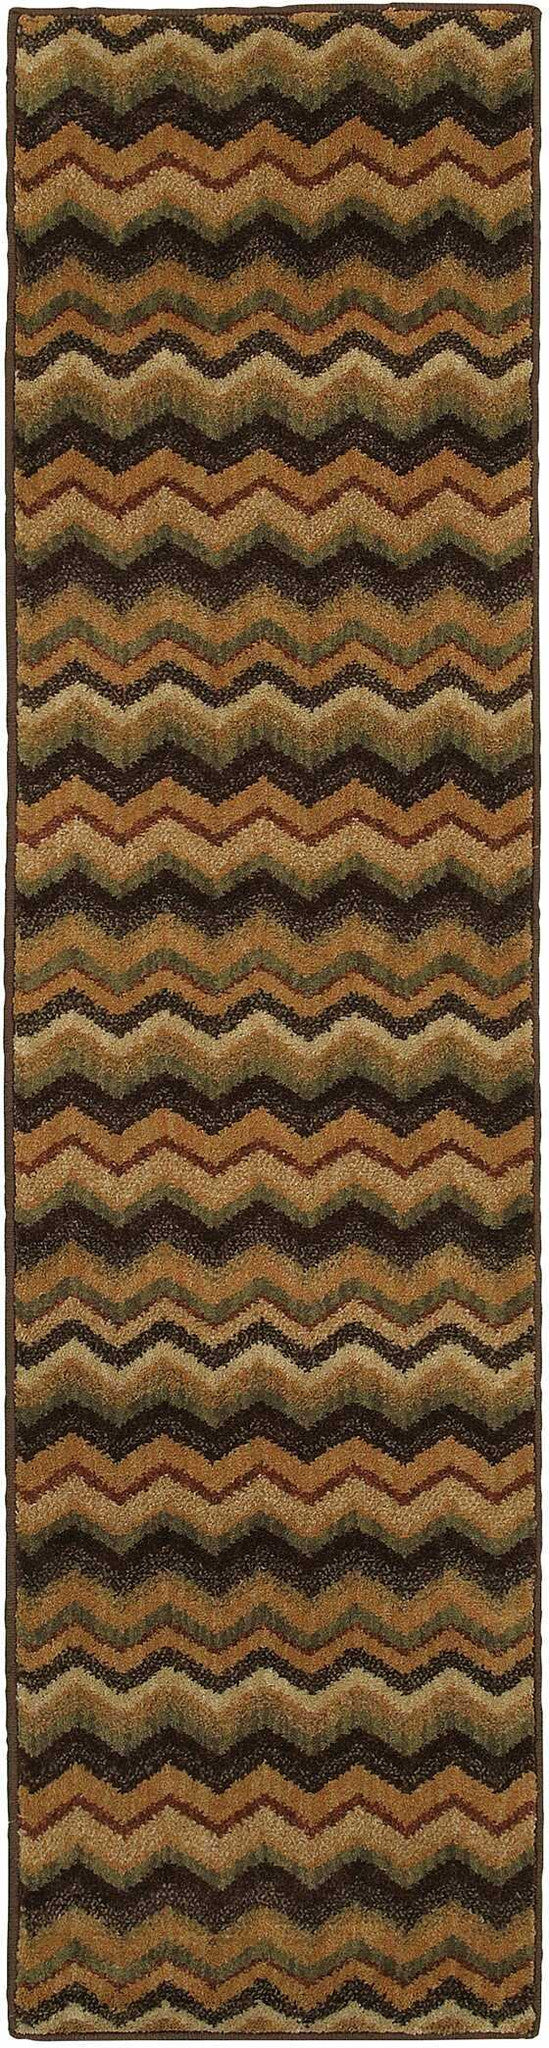 Oriental Weavers Aston 2068 Area Rug